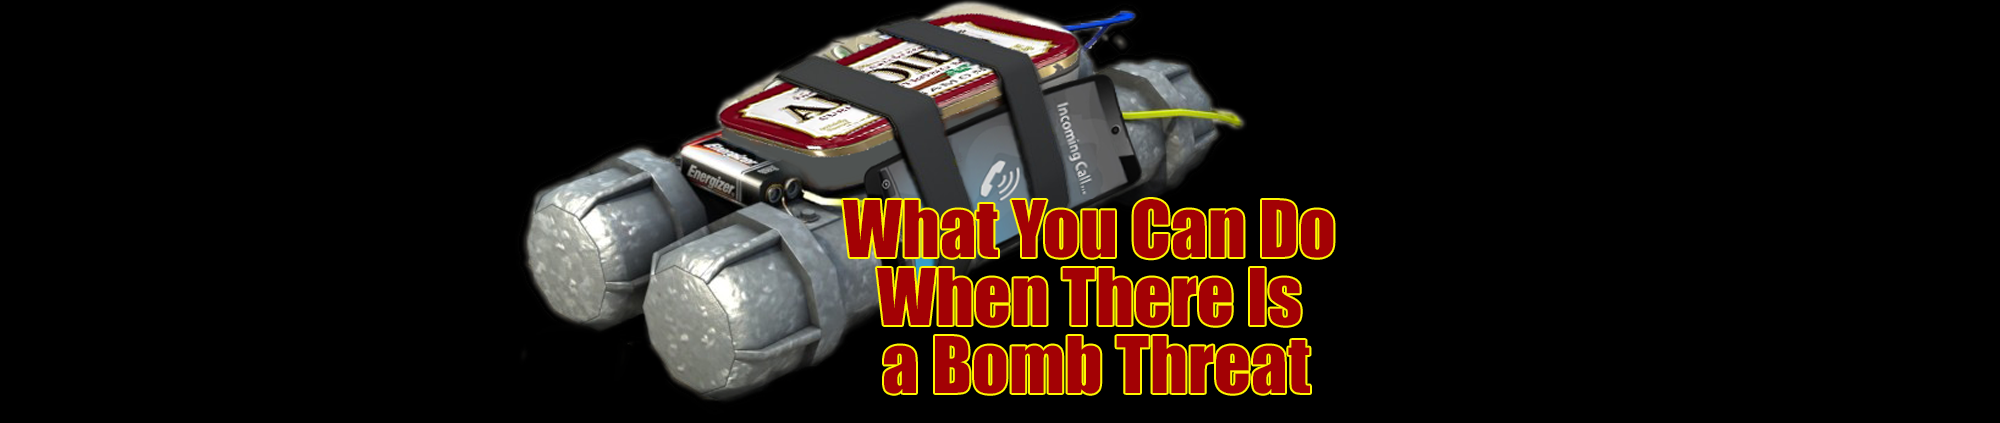 What you can do when there is a bomb theat...